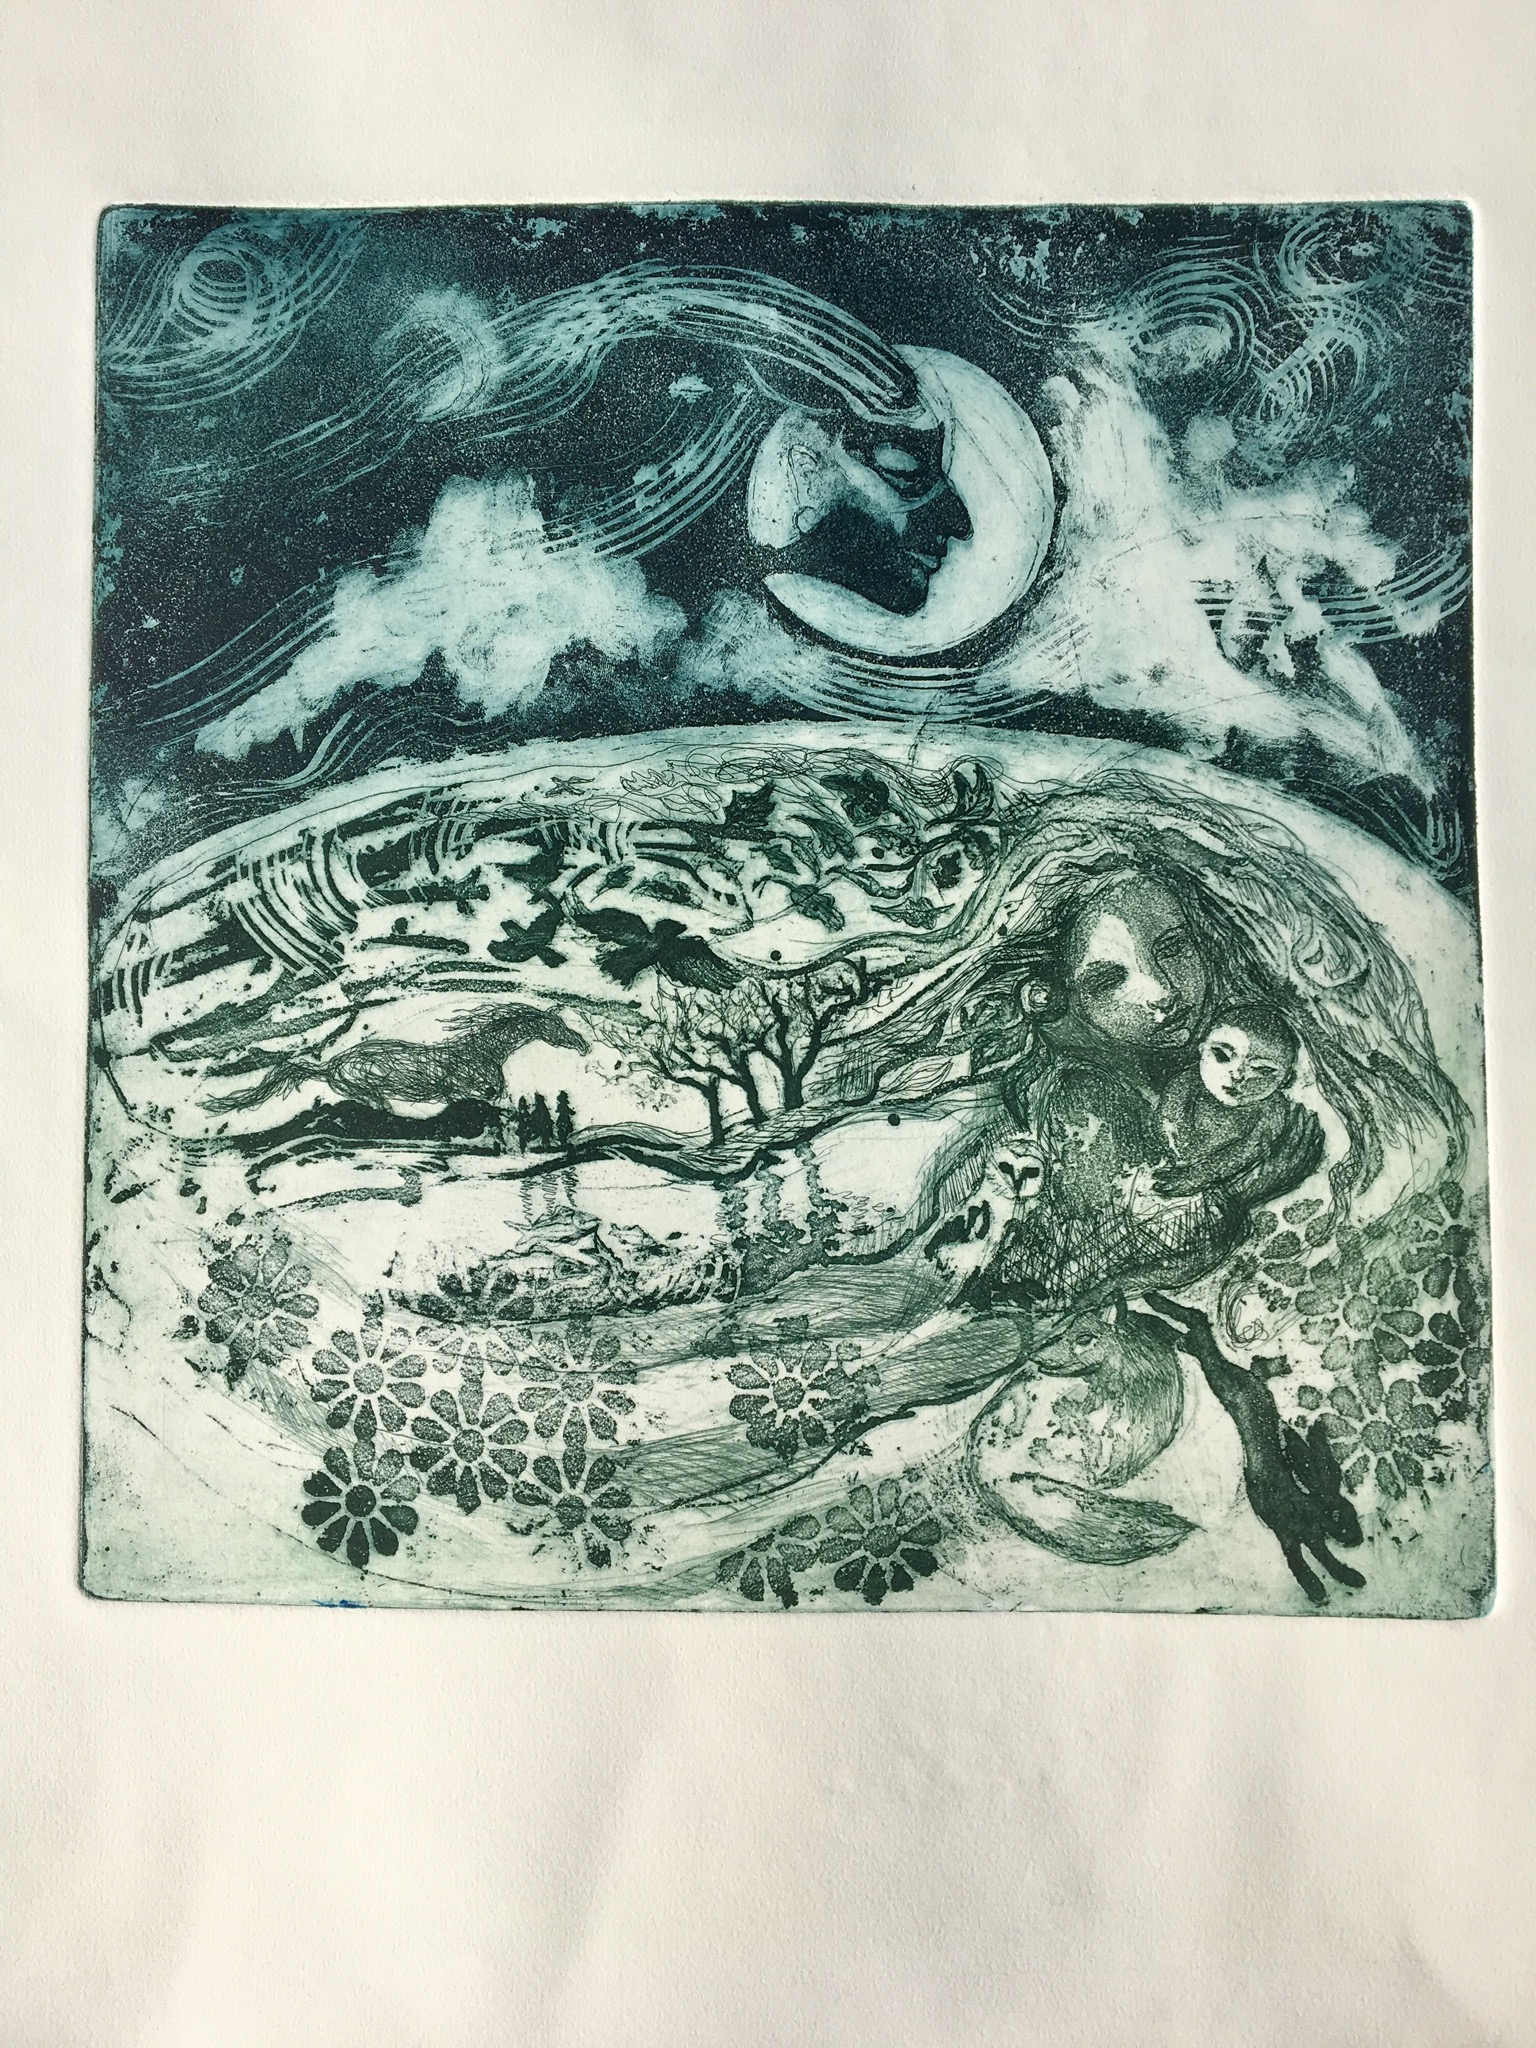 Intaglio pulled print